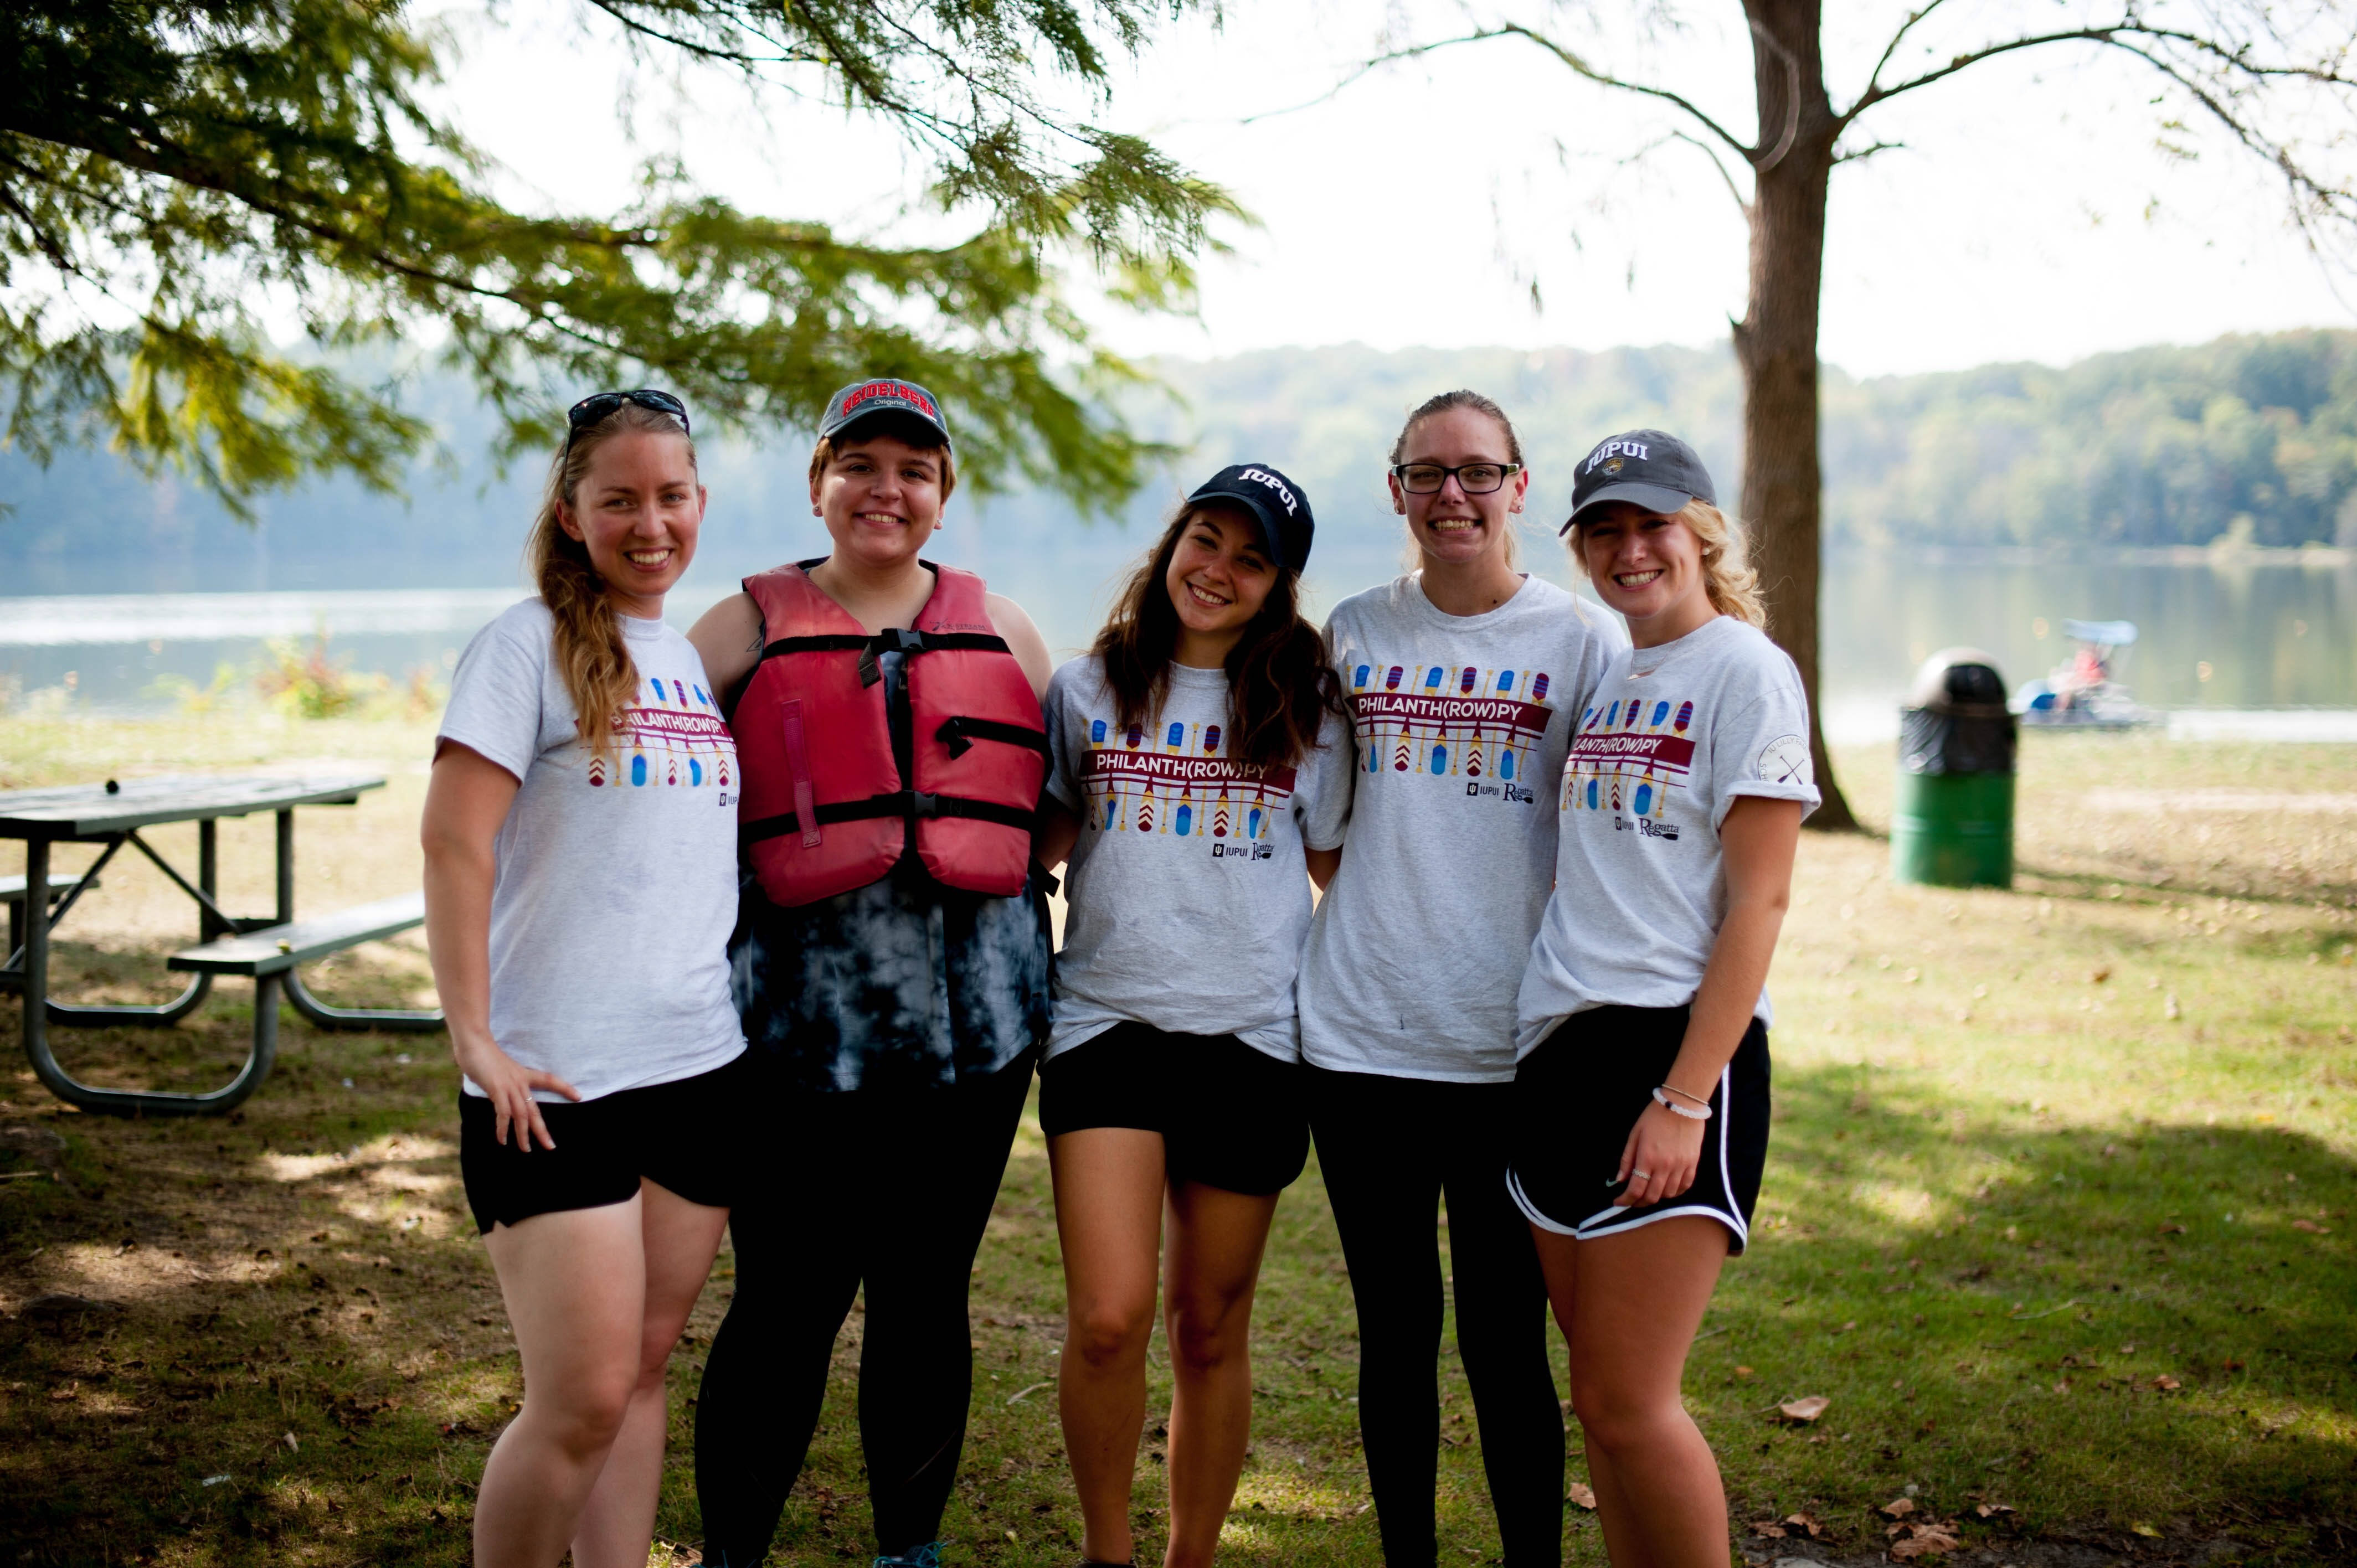 2017 IUPUI Regatta Team